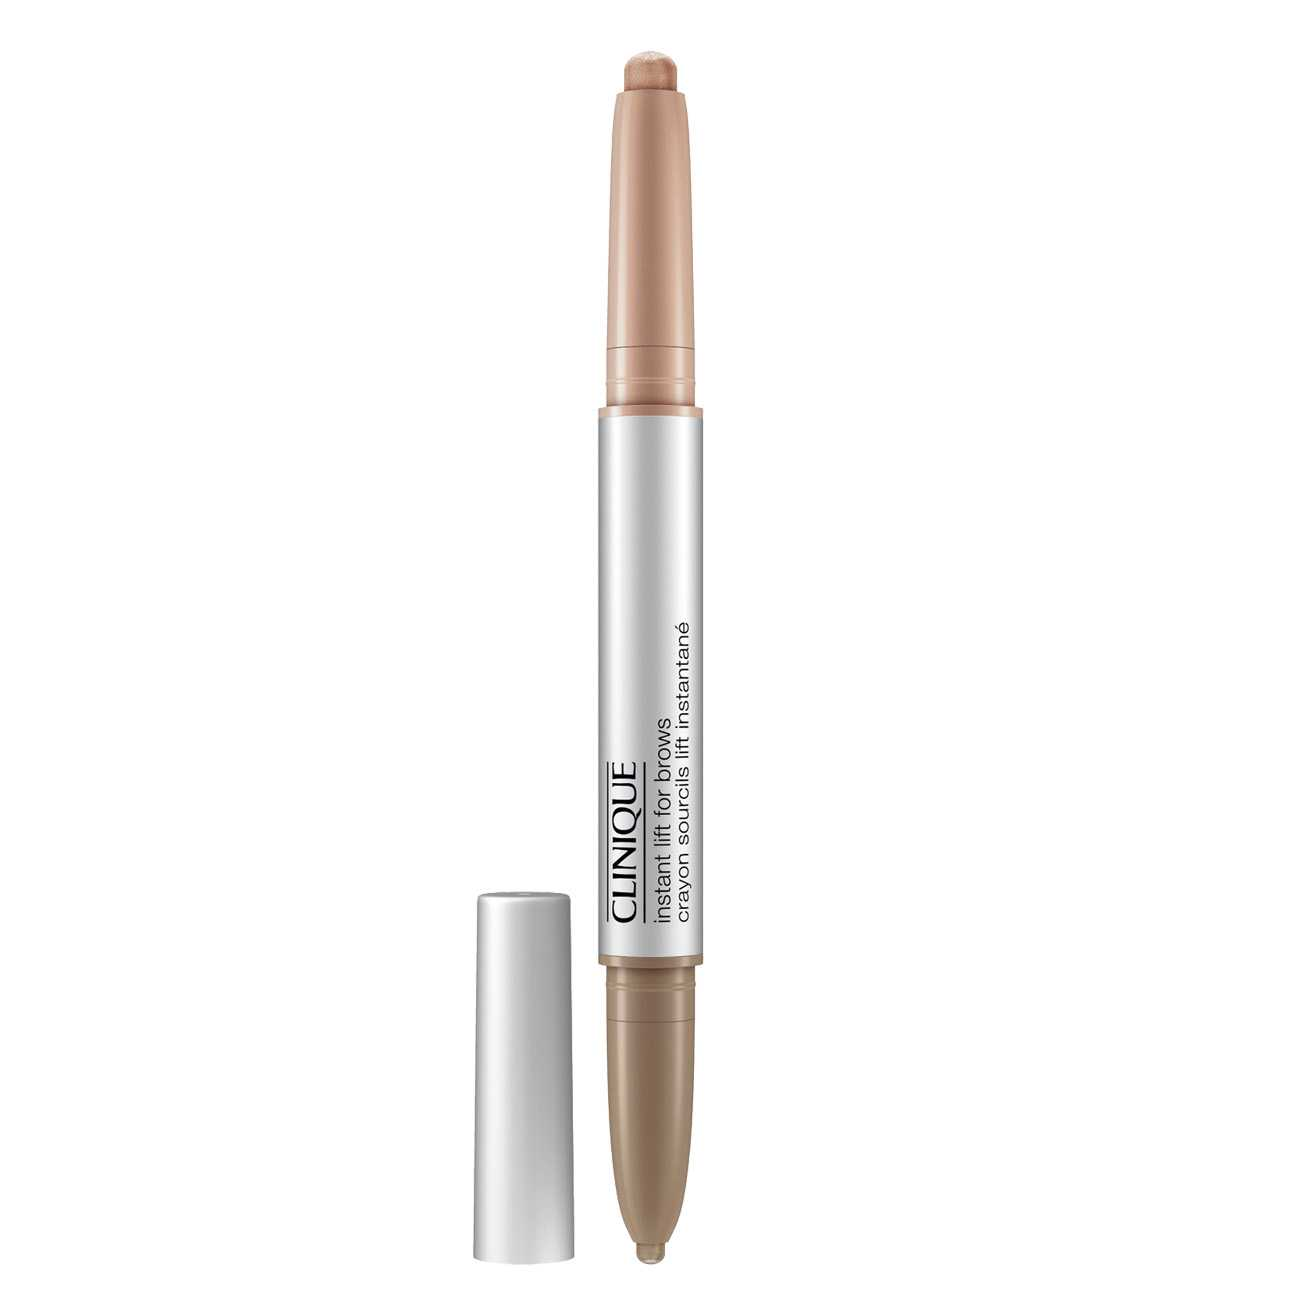 INSTANT LIFT FOR BROWS 1 G 2